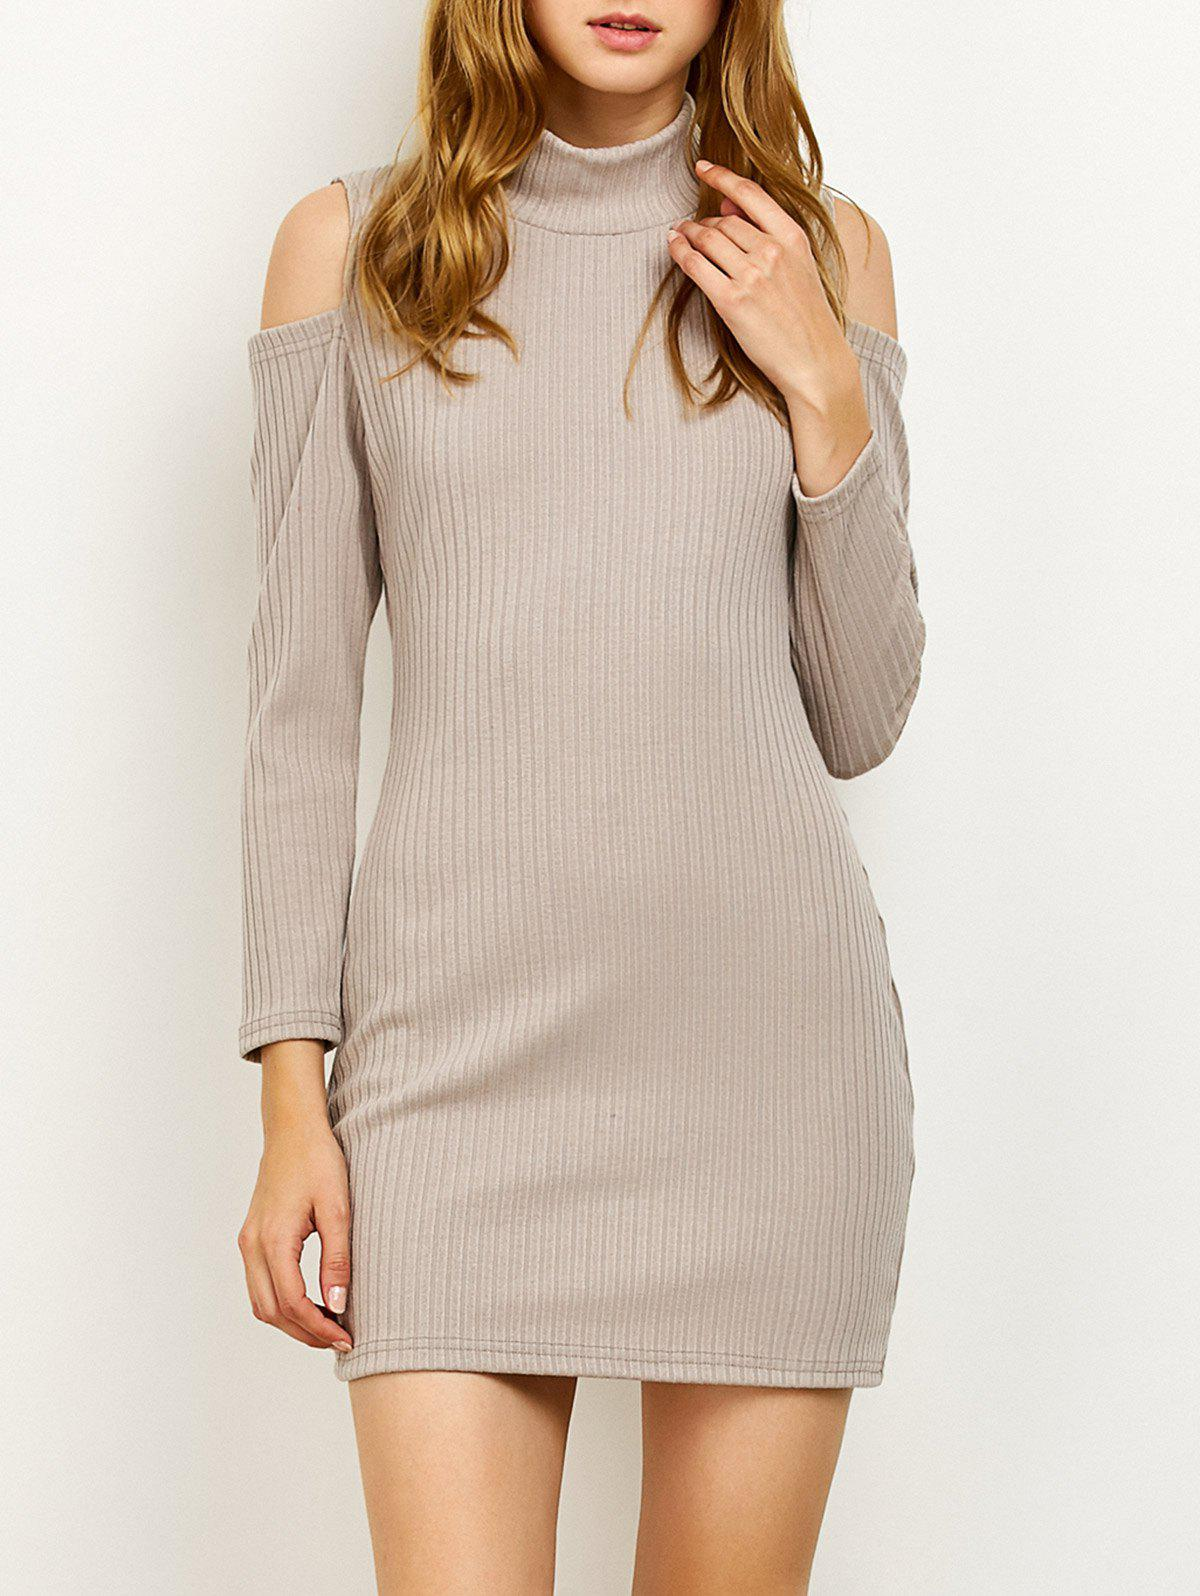 Long Sleve High Neck Cold Shoulder Ribbed Bodycon Sweater Dress - GRAY S